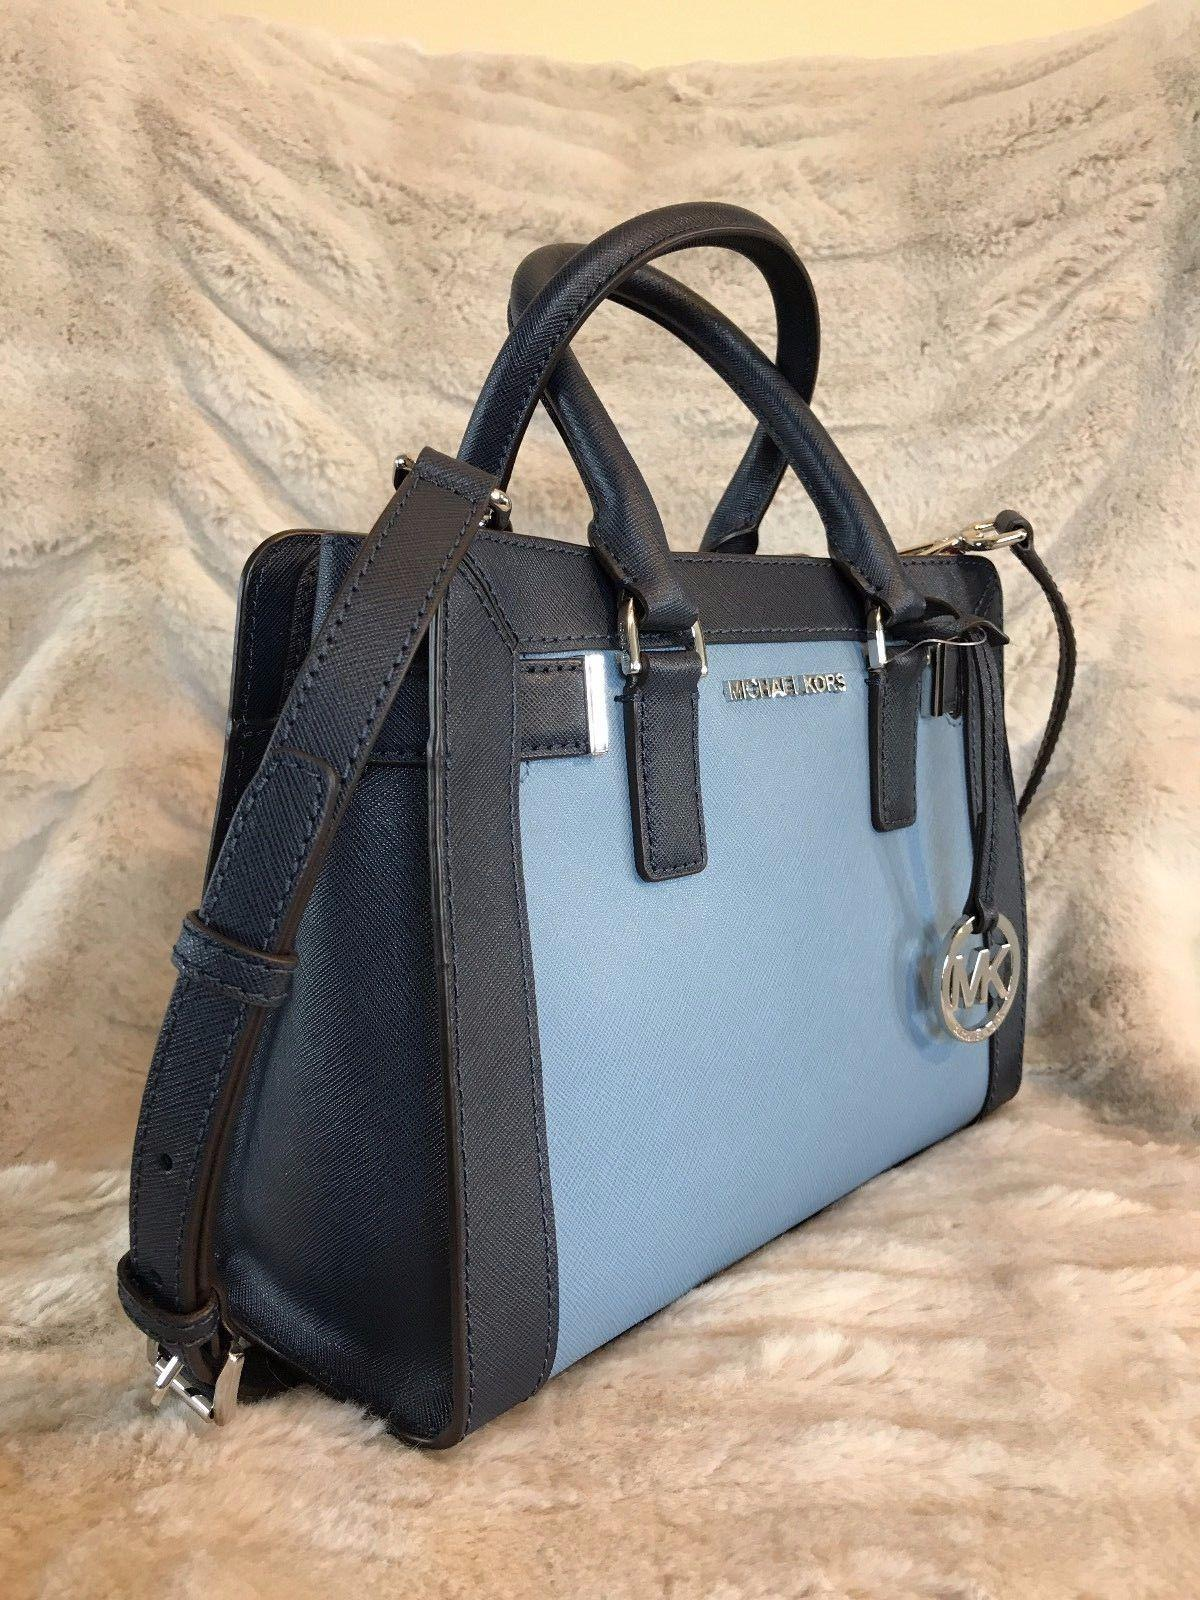 fd0cd6e8e9bc ... discount code for michael kors mk dillon small monogram brown crossbody  strap satchel in blue navy